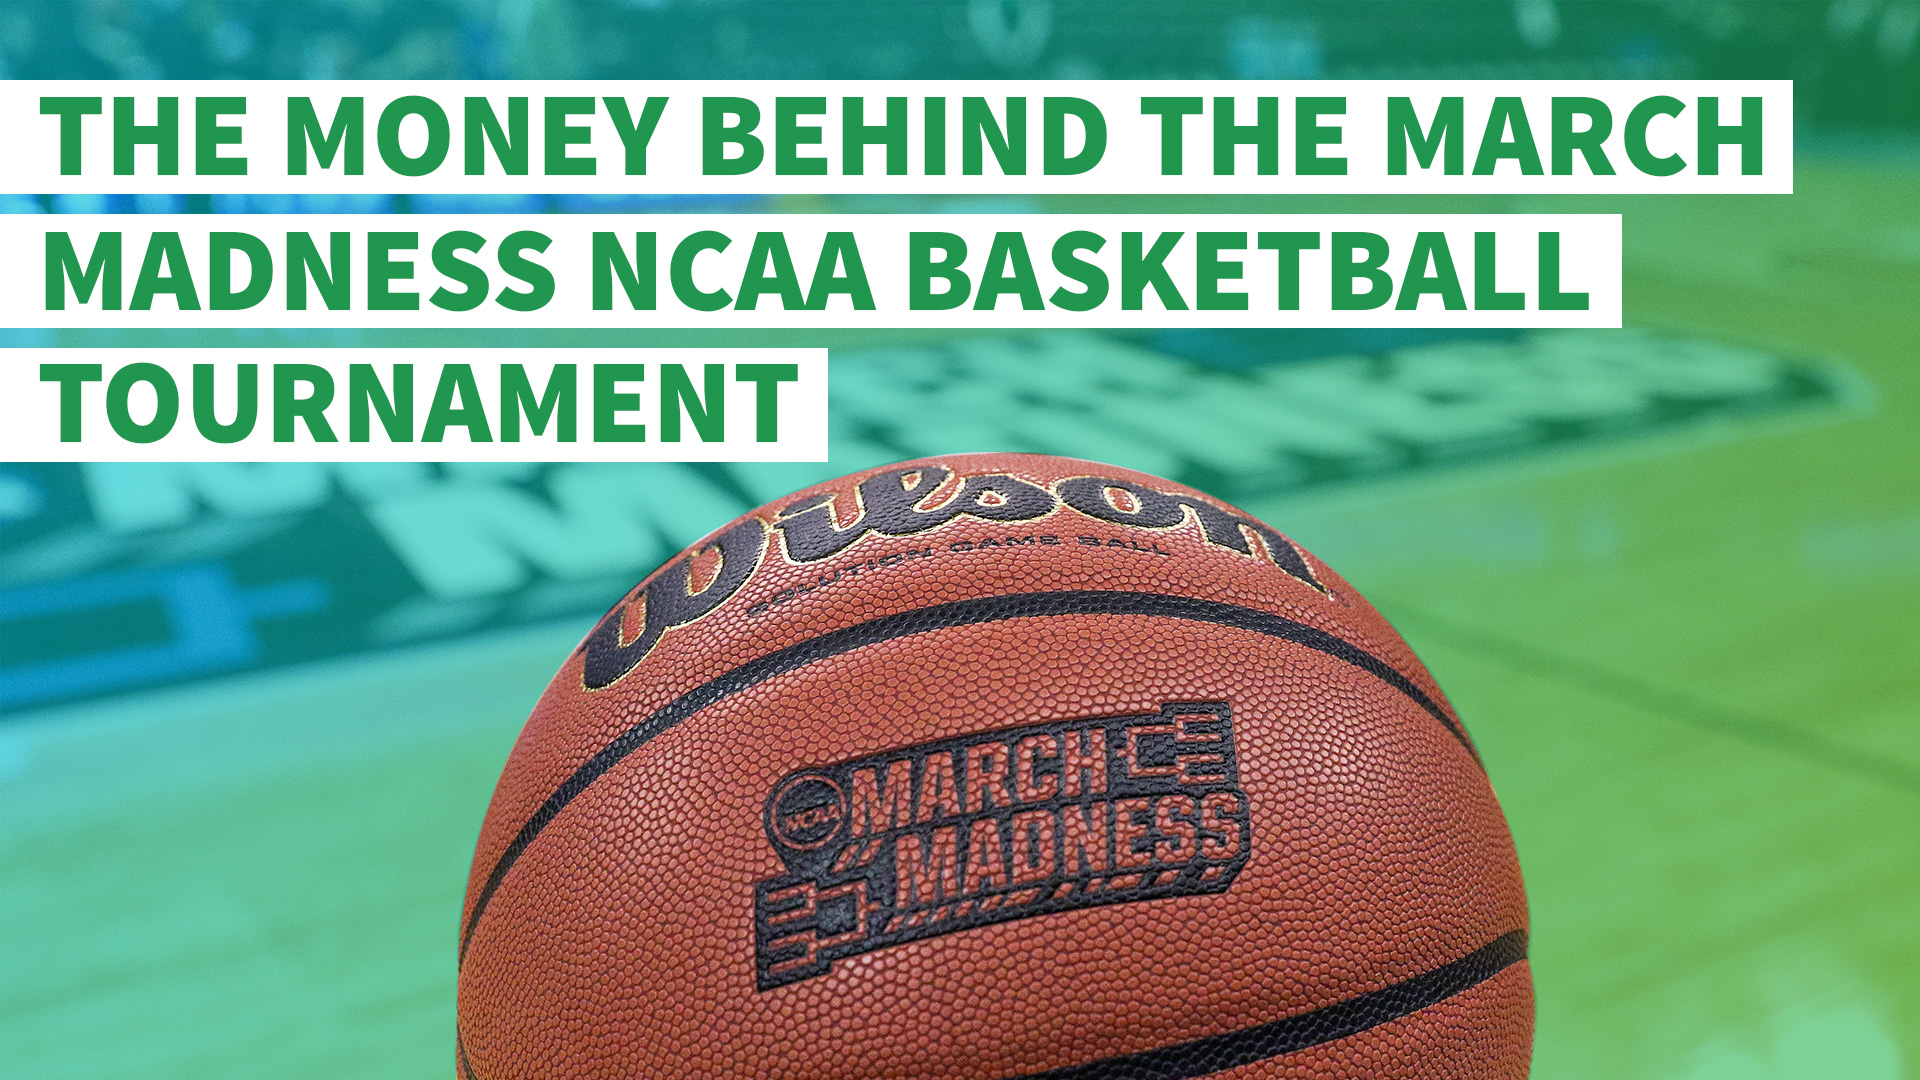 The Money Behind the March Madness NCAA Basketball